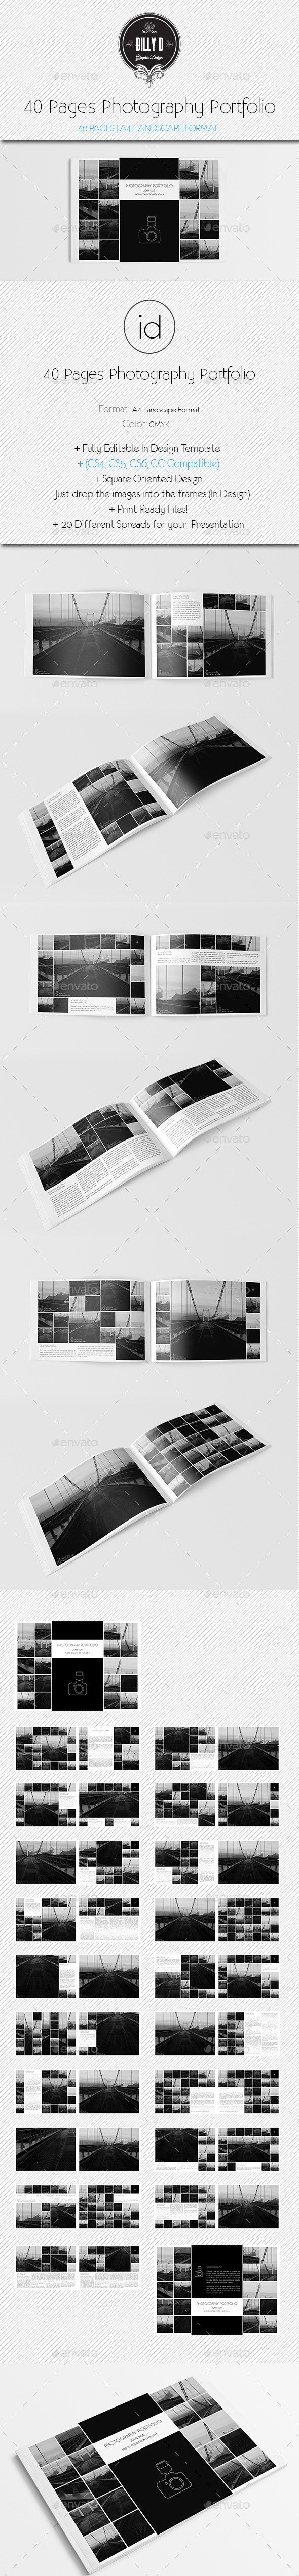 GraphicRiver 40 Pages Photography Portfolio 8825703